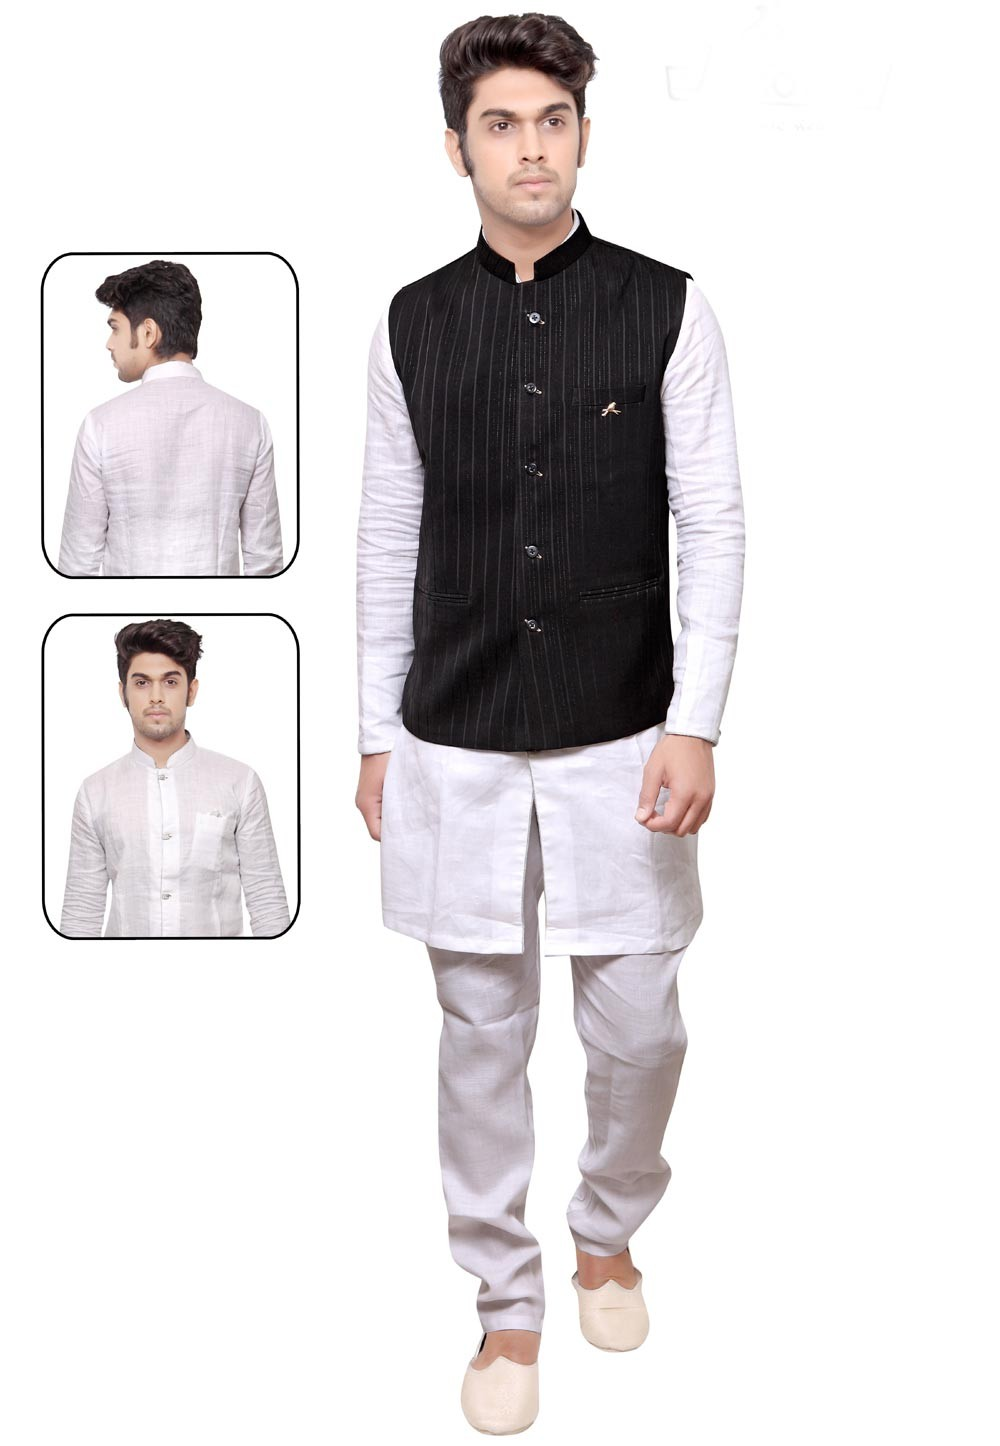 Exquisite White,Black Color Readymade Kurta Pyjama With Jacket.